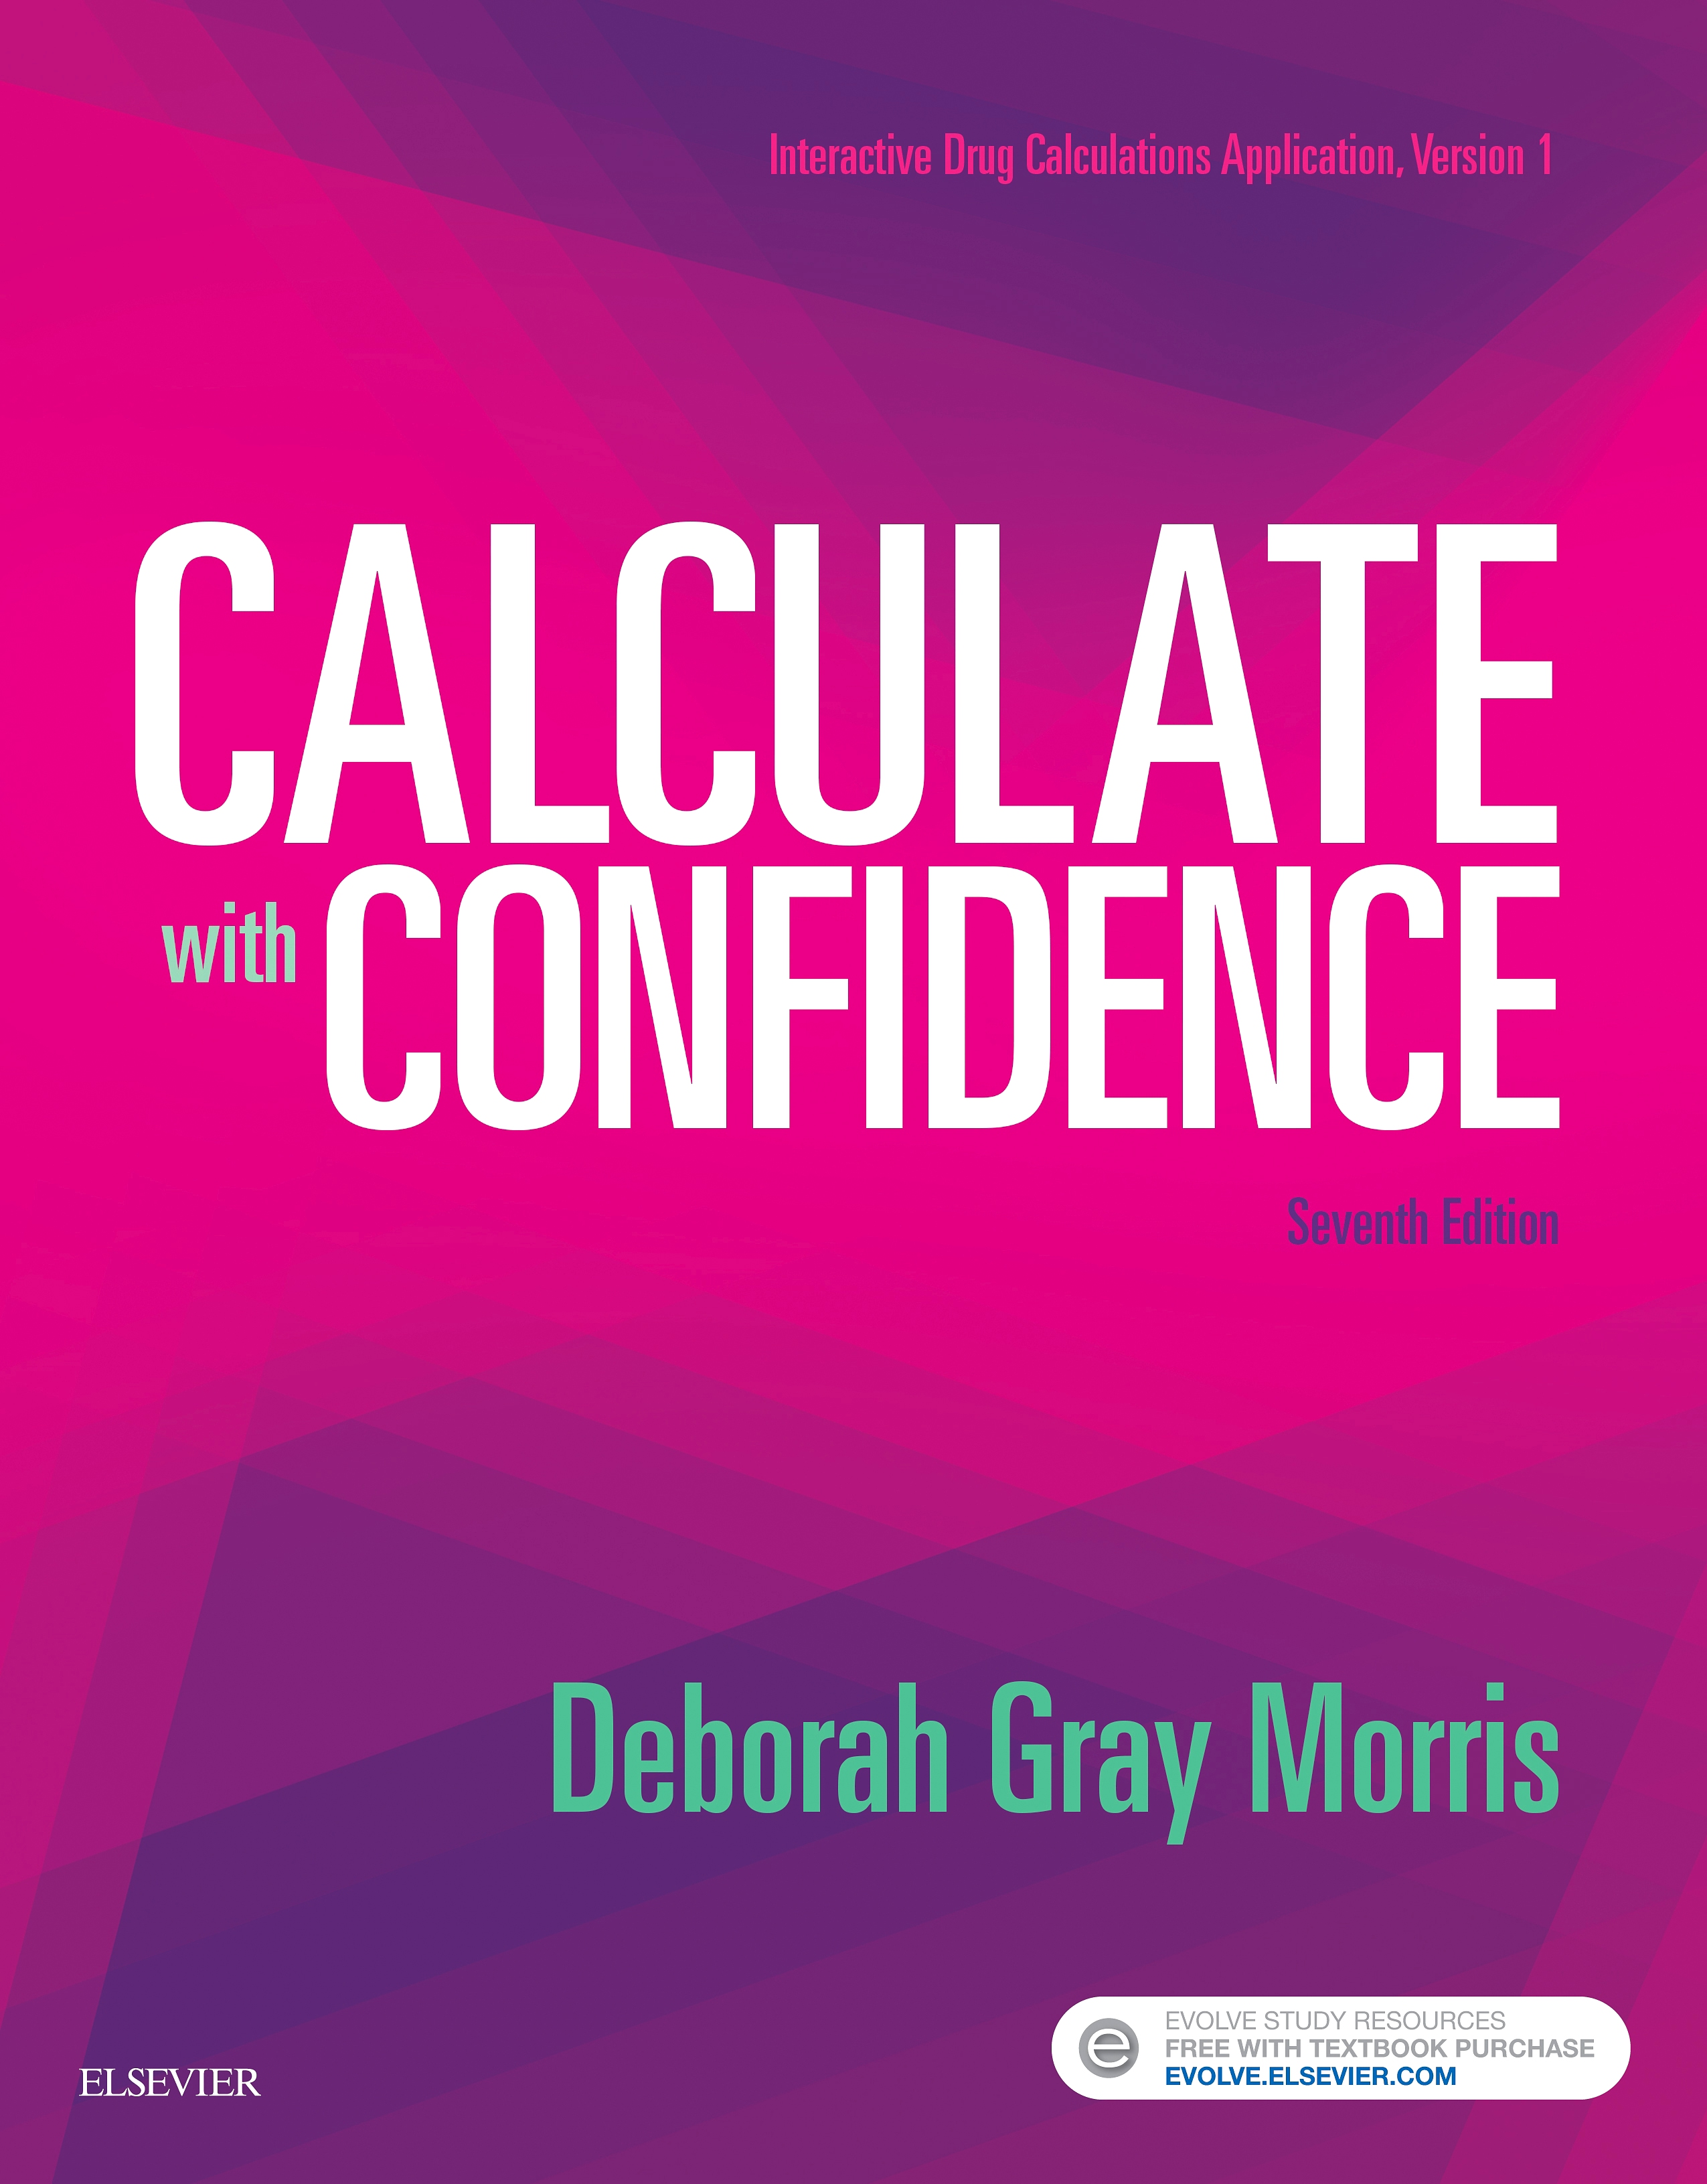 Drug Calculations Online for Calculate with Confidence, 7th Edition